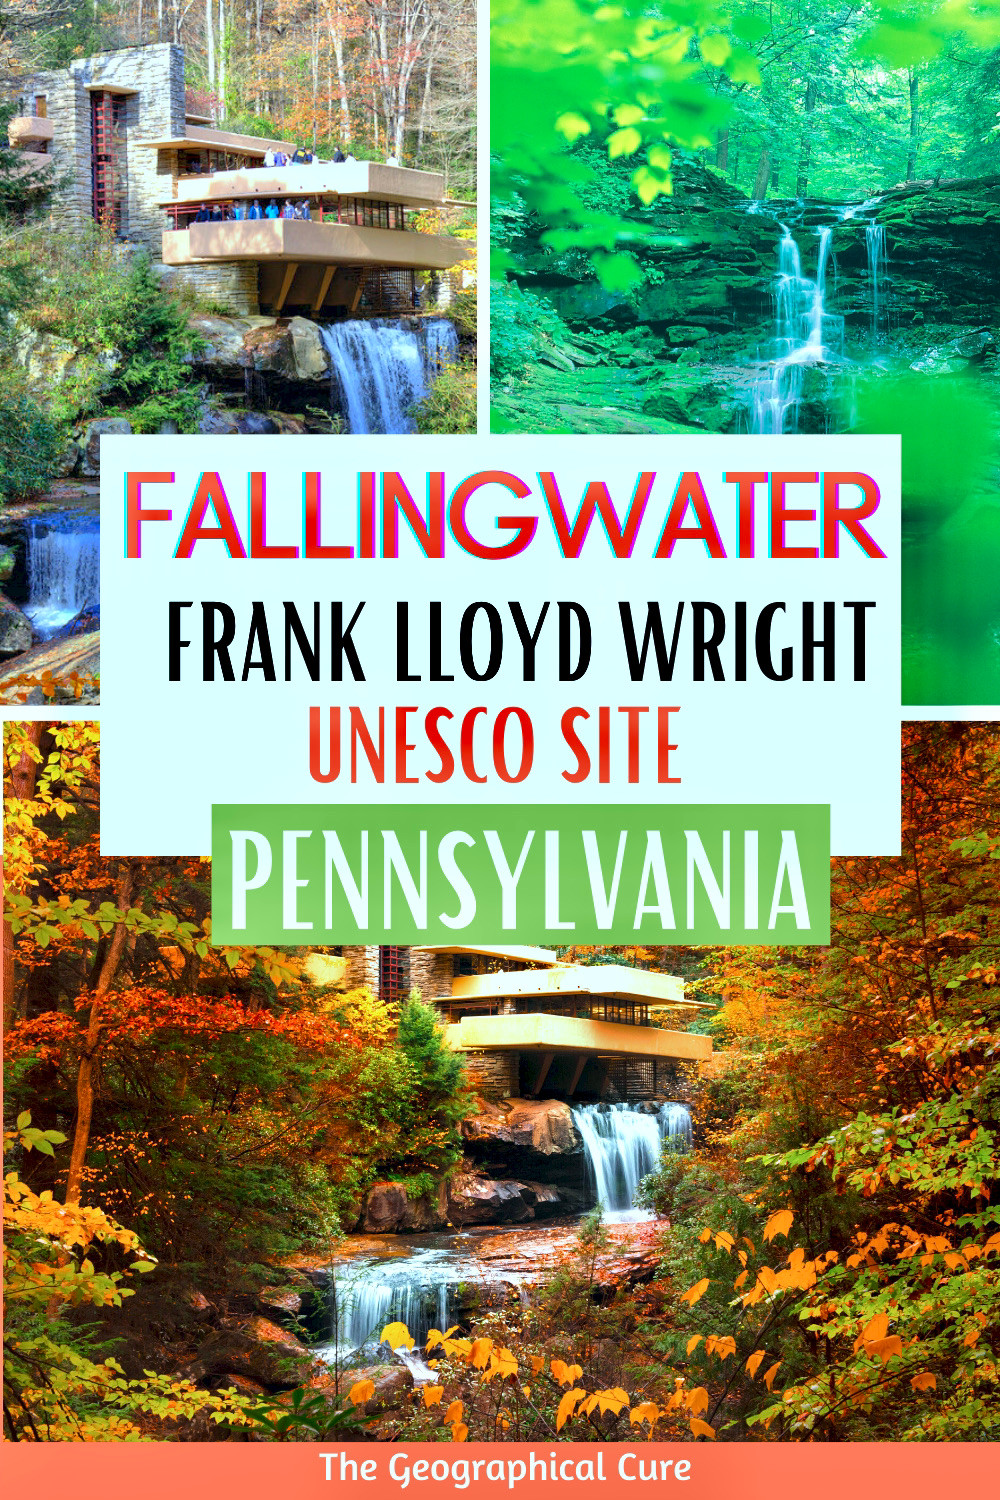 guide to Fallingwater, Frank Lloyd Wright's masterpiece and a UNESCO-listed site in Pennsylania